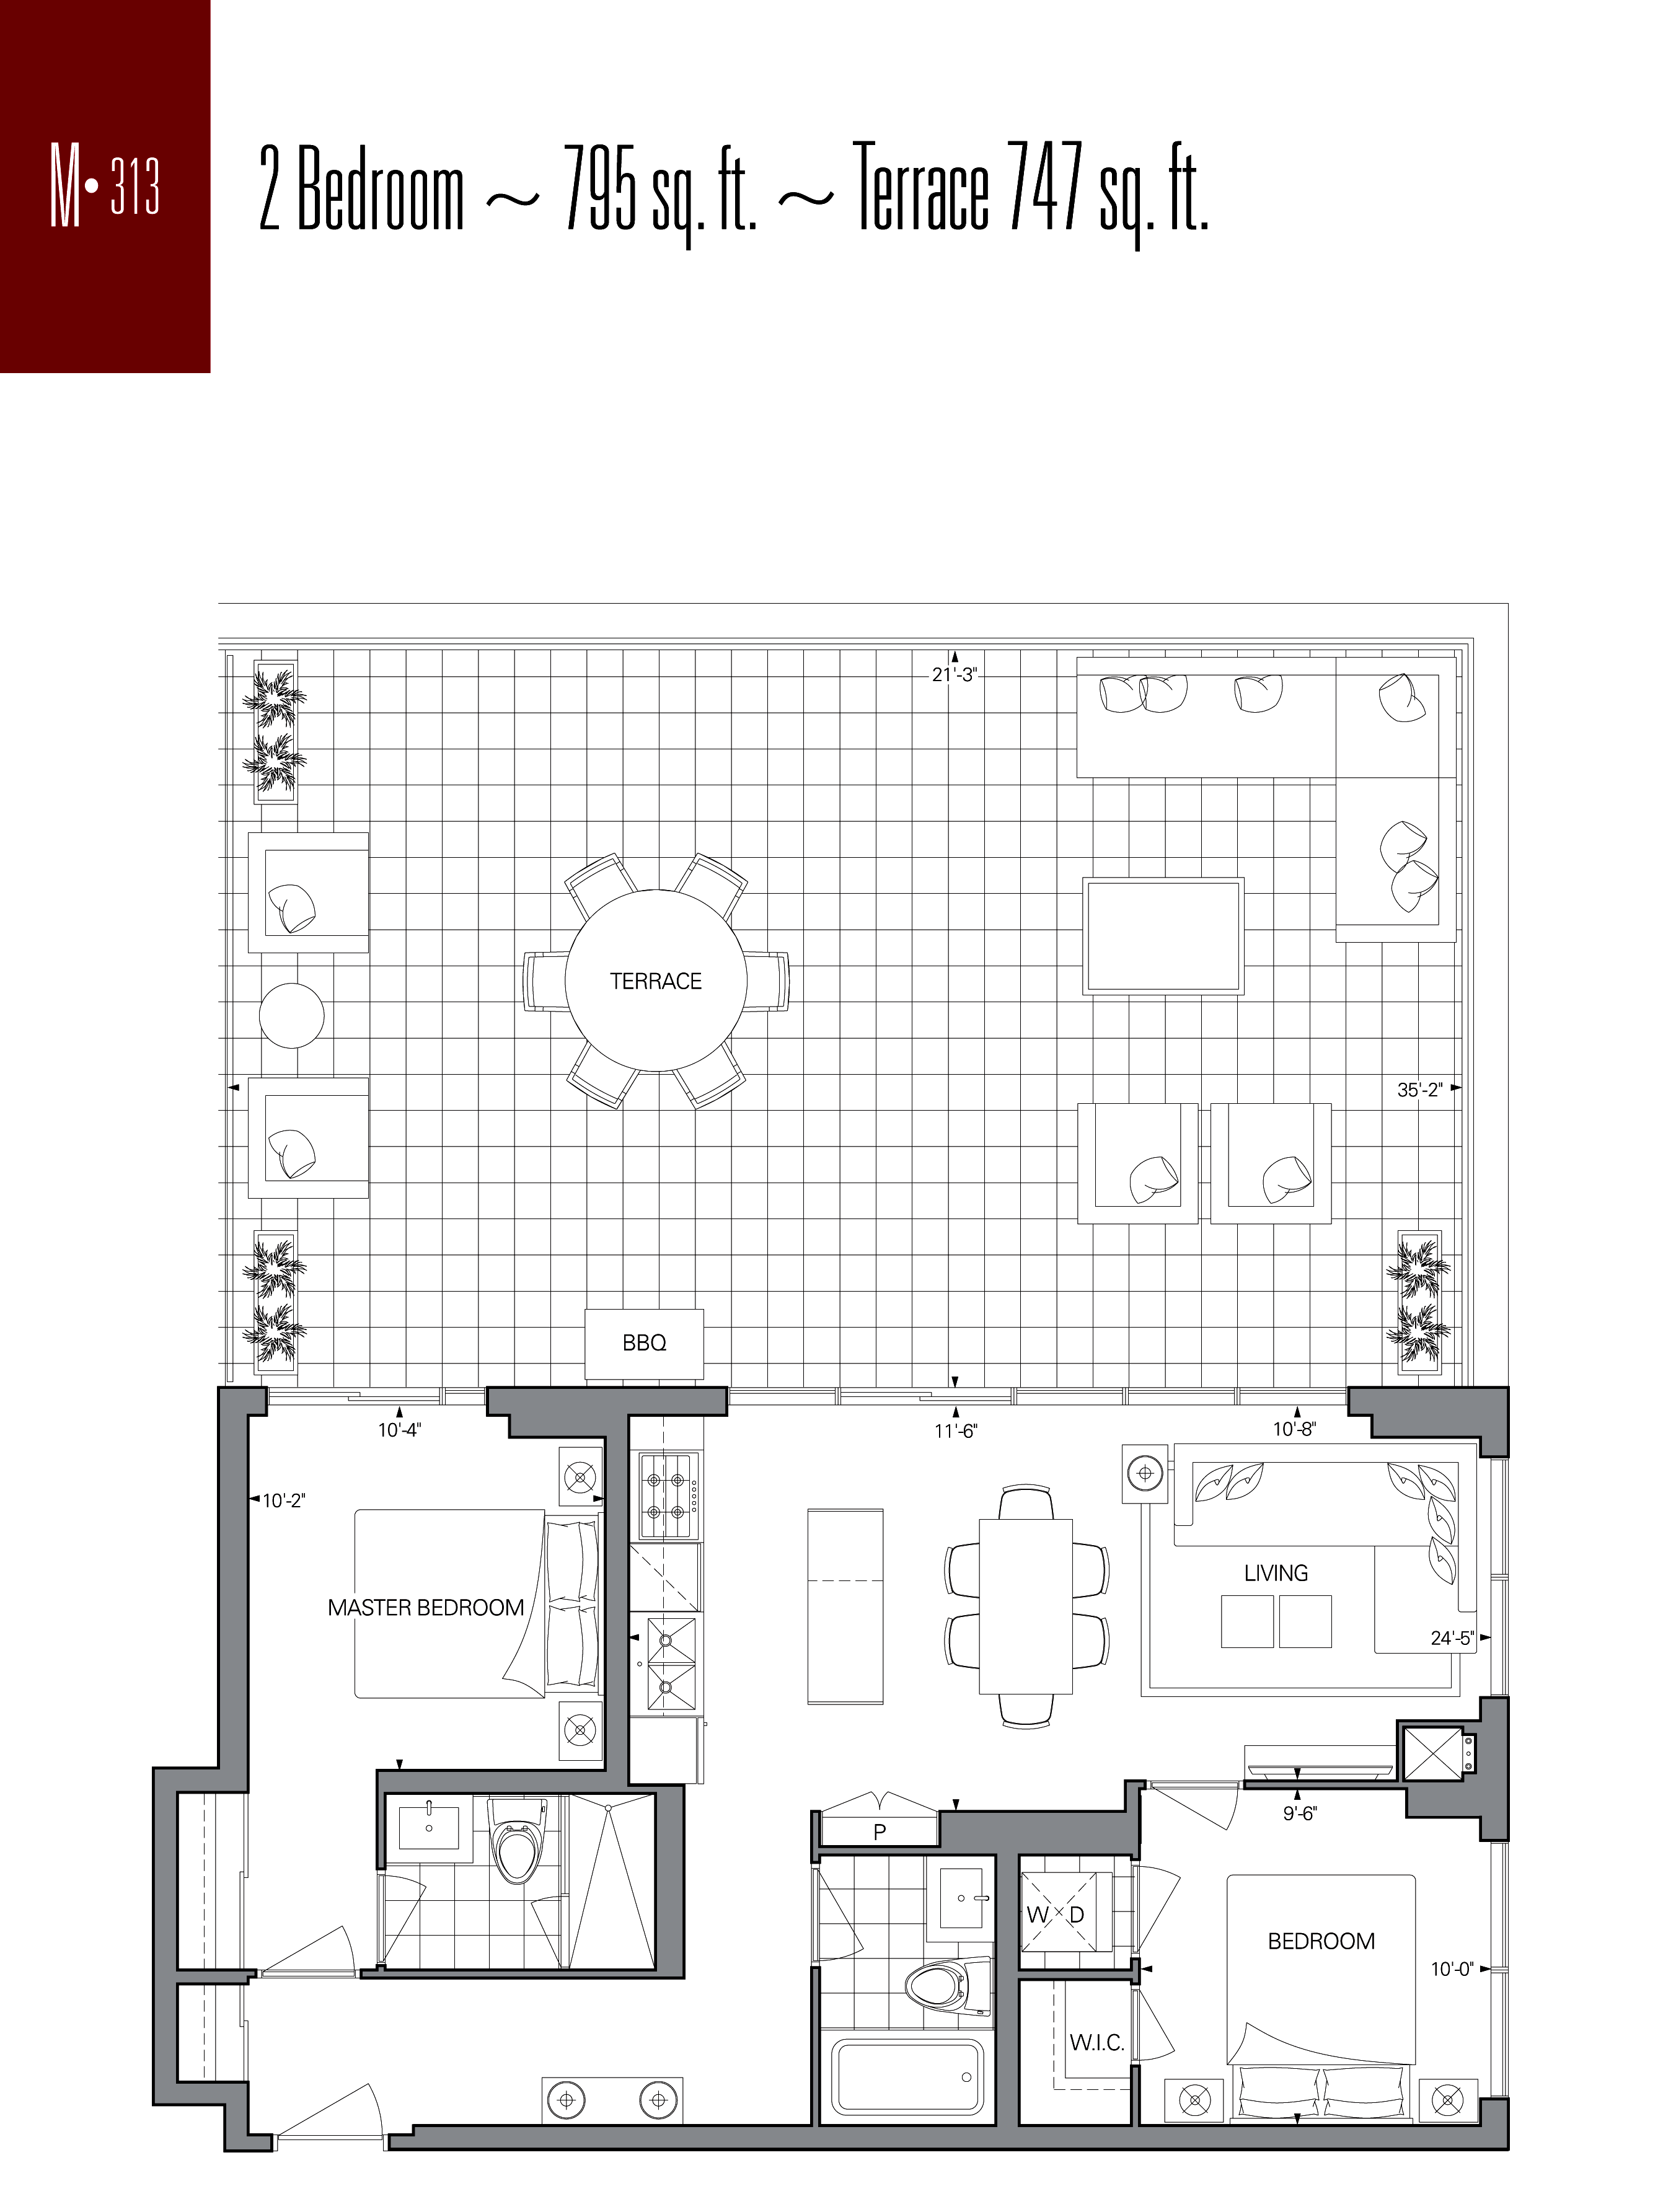 RISE CONDOS - FLOORPLANS TWO BED TERRACE 747 SQ FT - CONTACT YOSSI KAPLAN